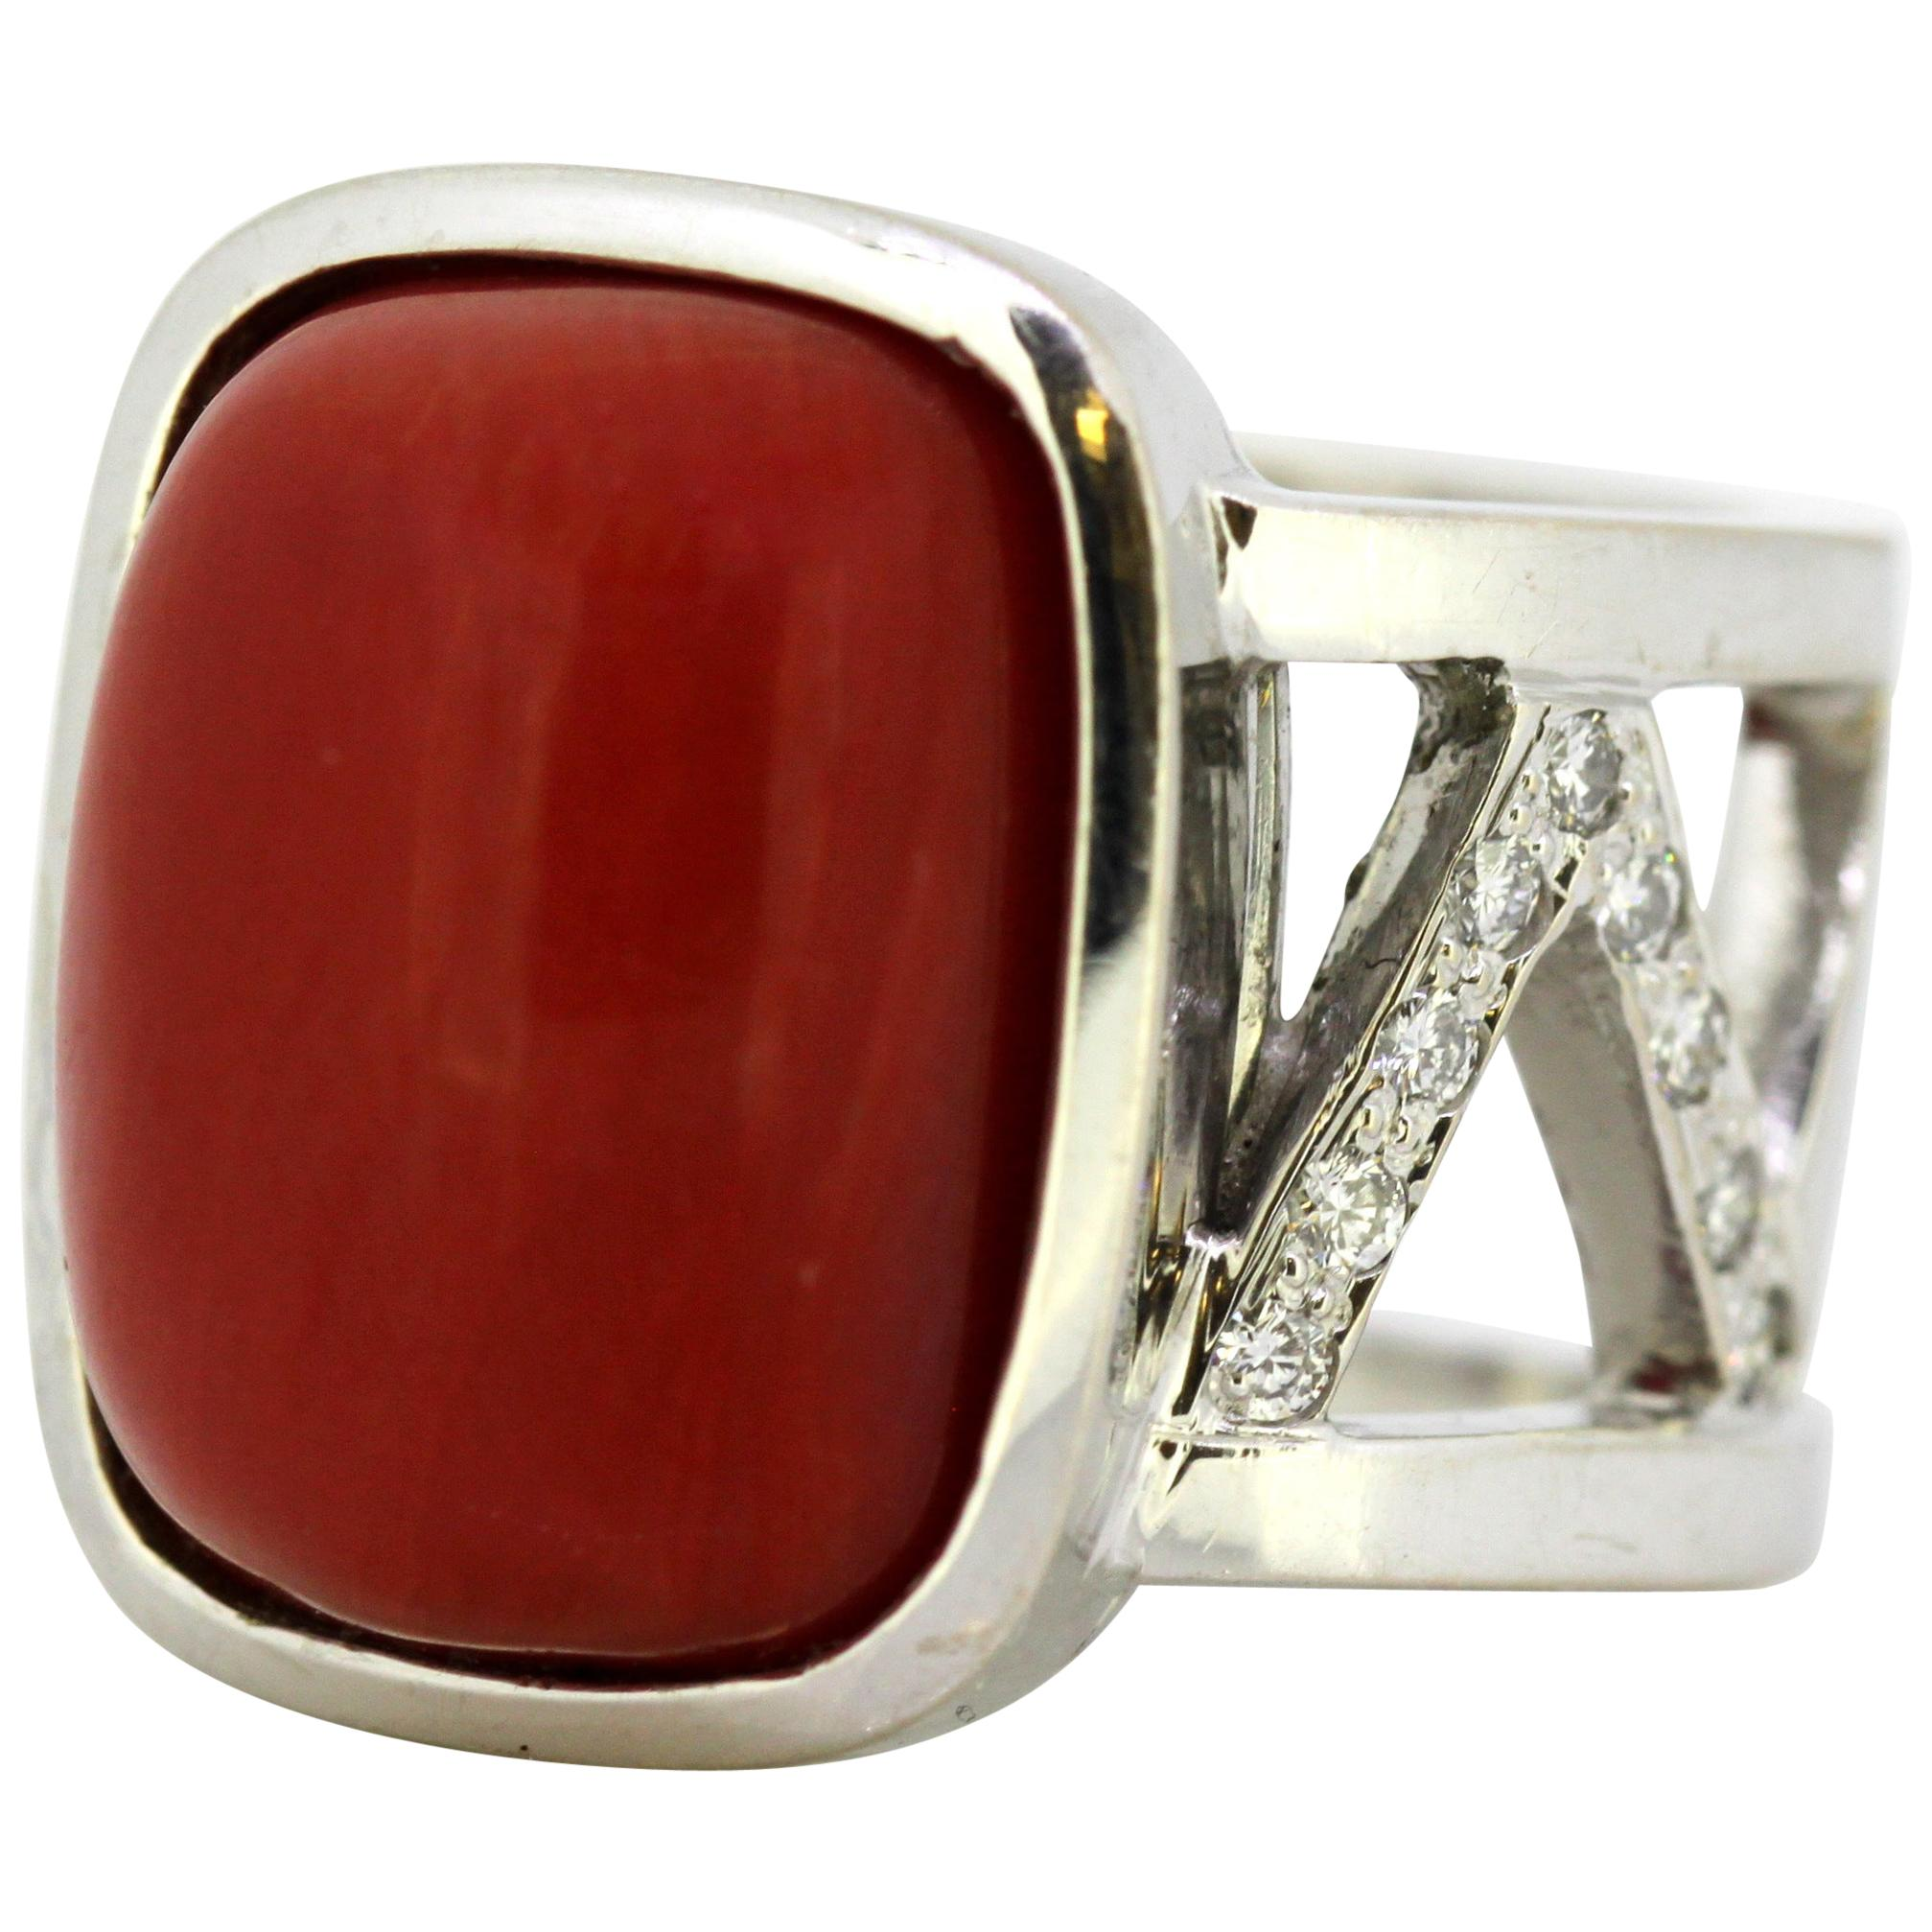 Vintage 18 Karat White Gold Ring with Natural Coral and Diamonds